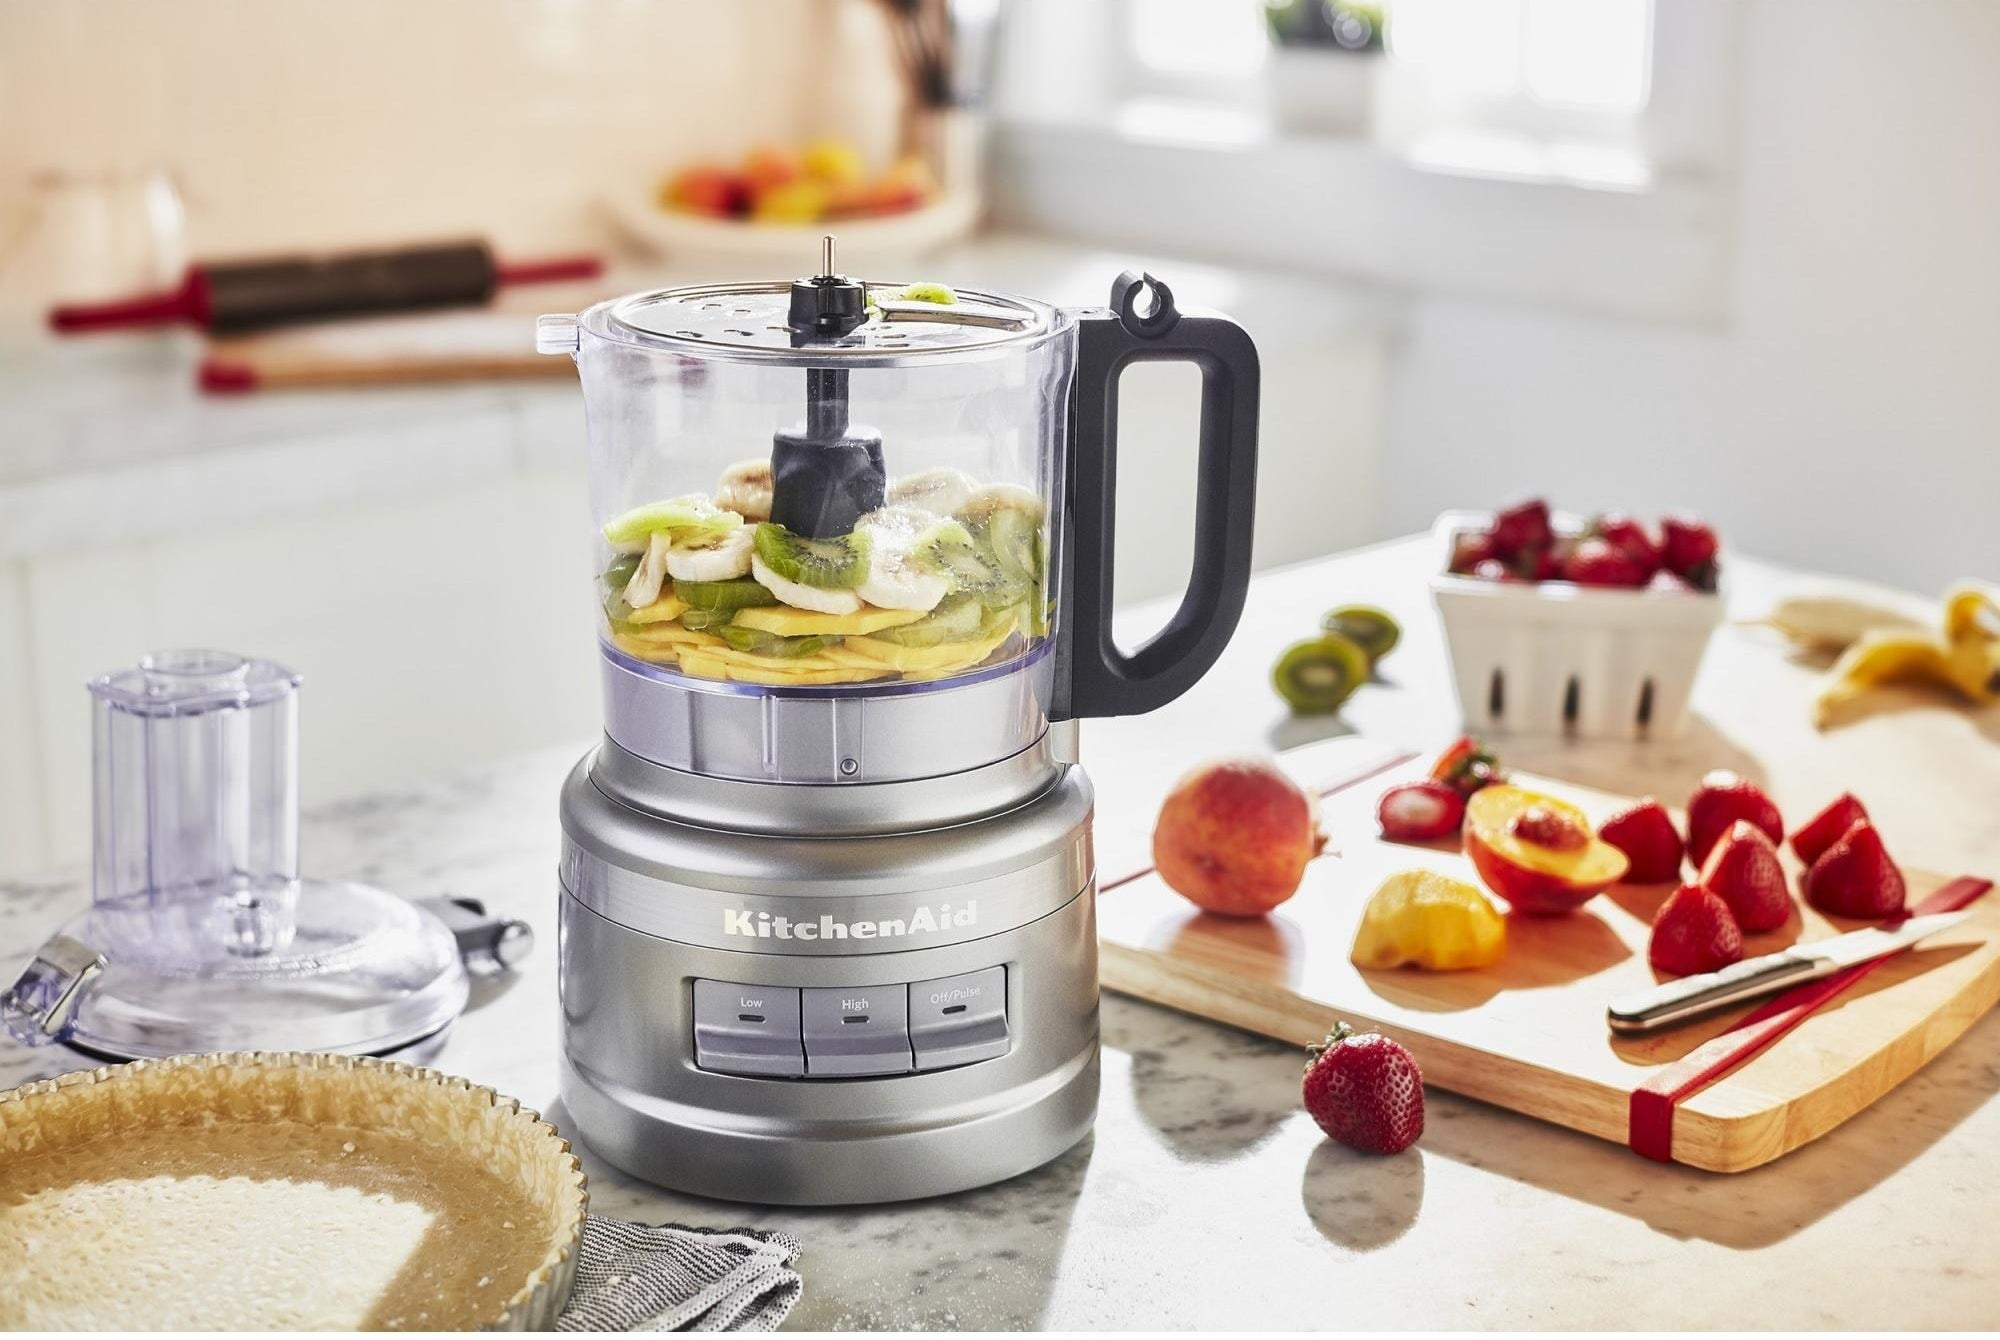 The food processor in a kitchen, full of fruit